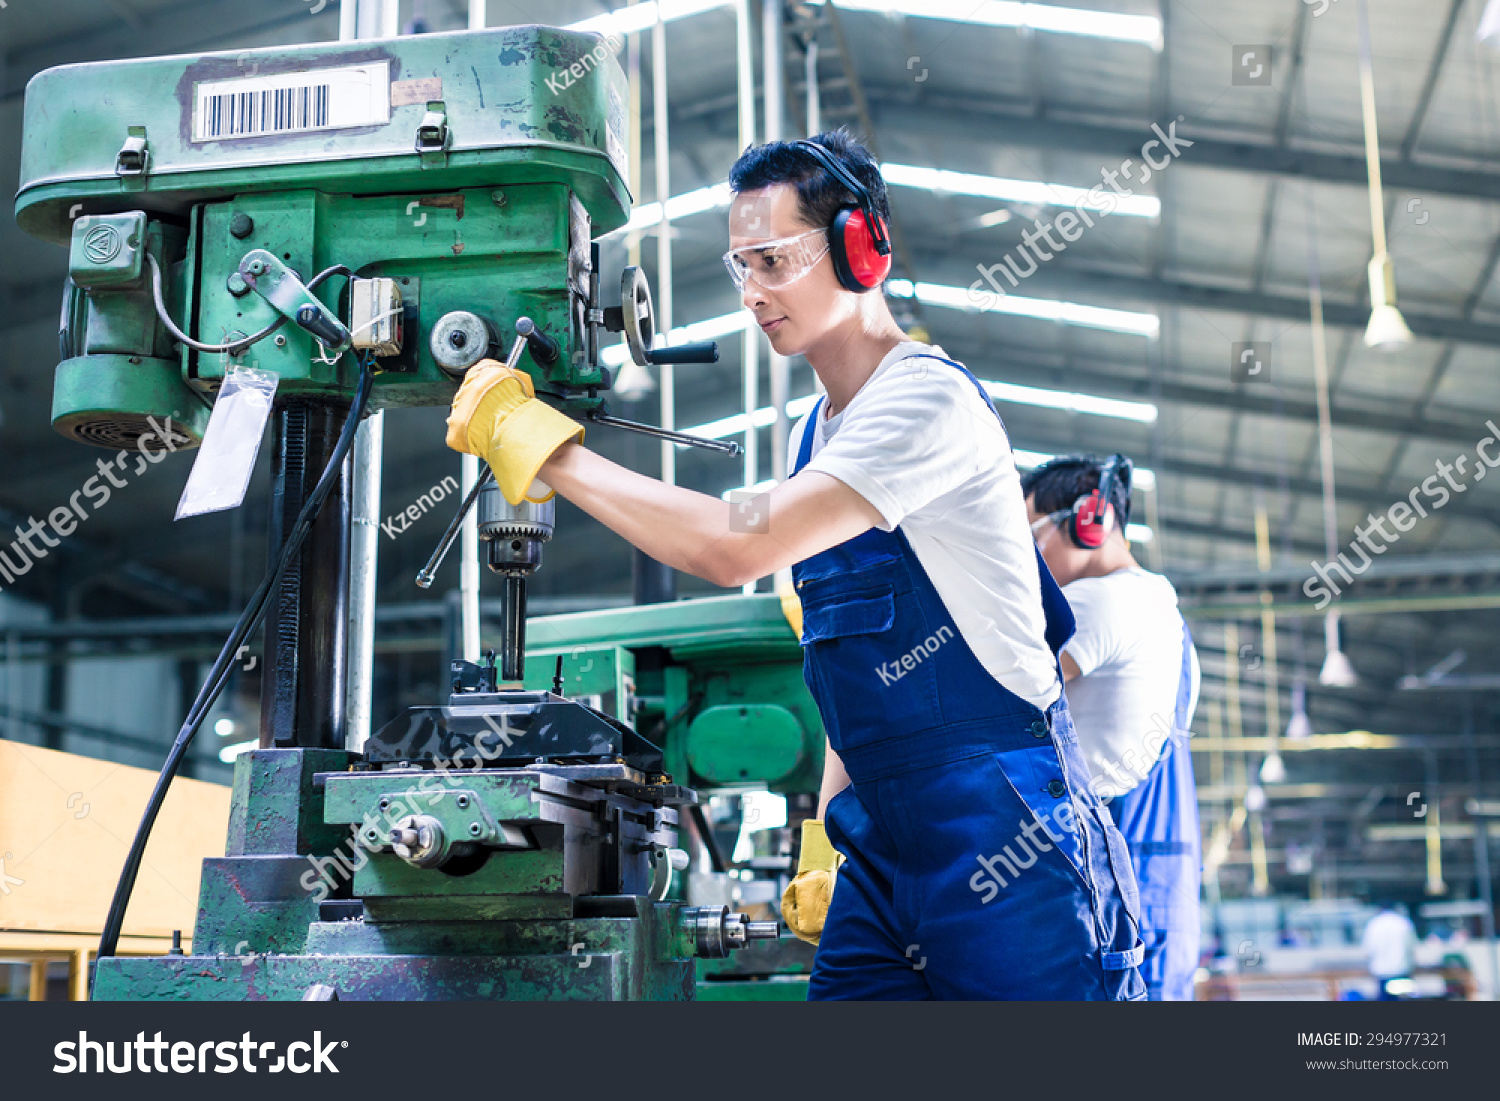 Asian Worker Production Plant Drilling Machine Photo – Production Worker